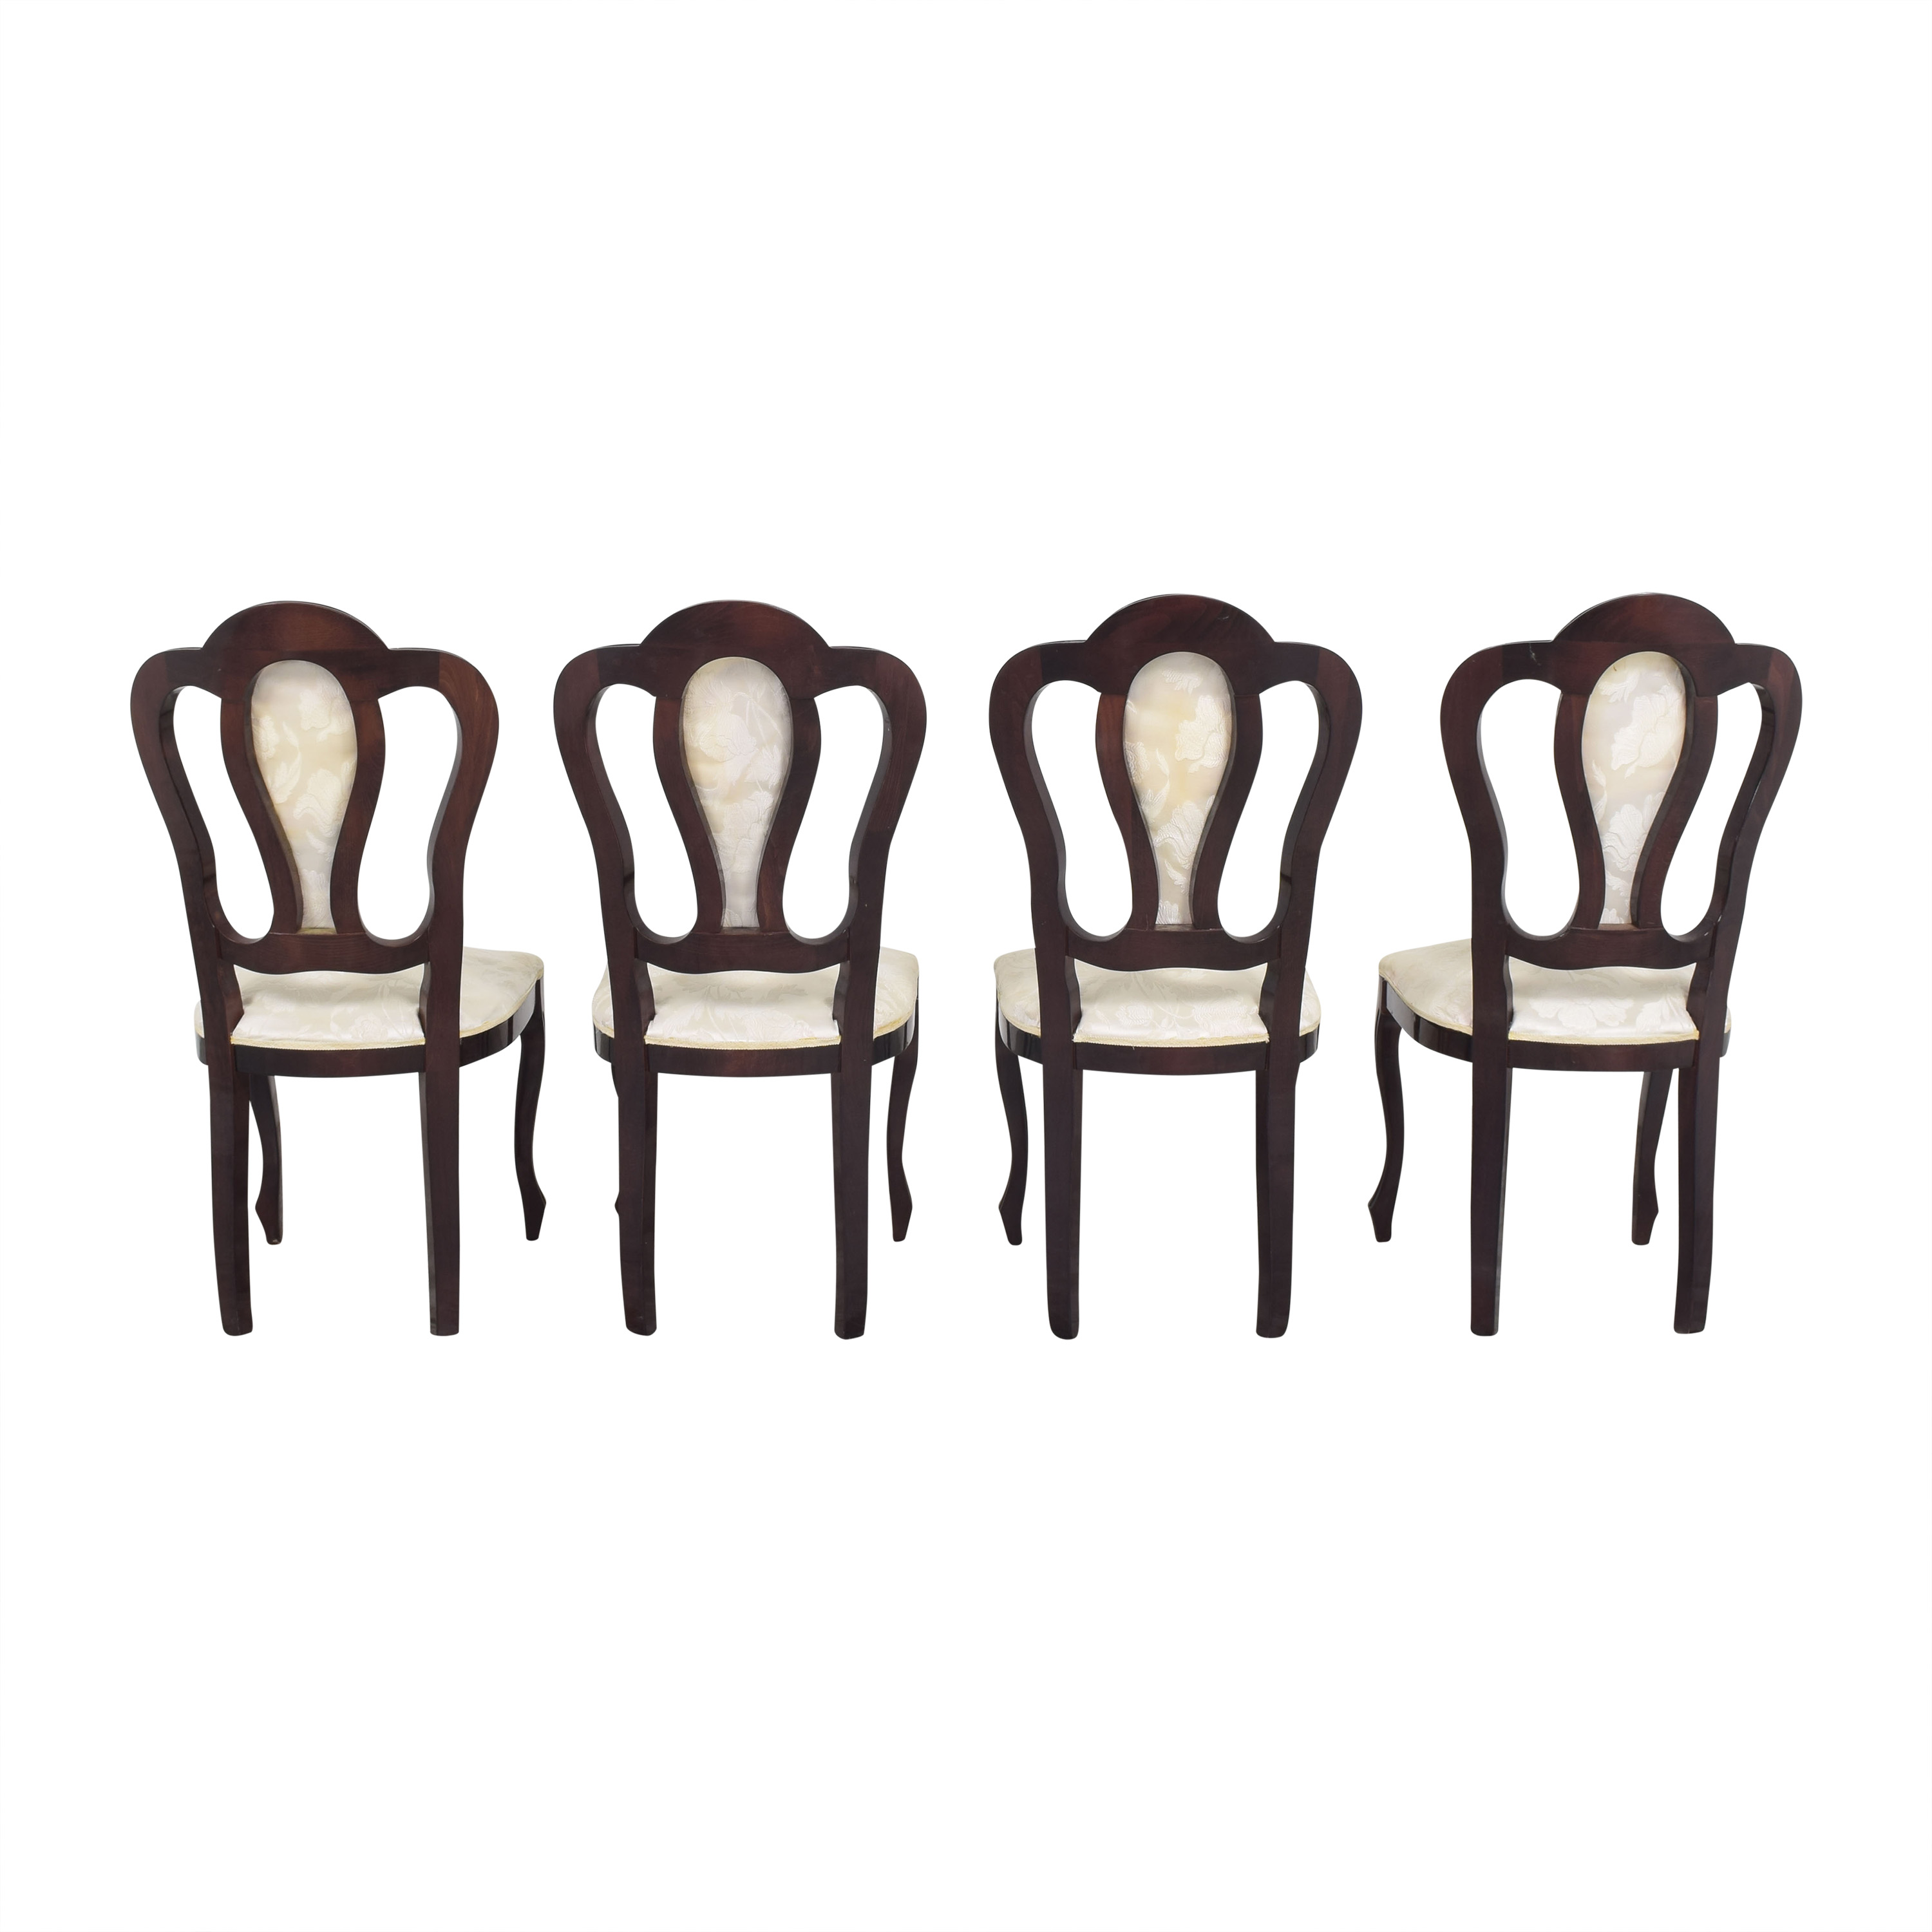 Floral Upholstered Dining Chairs used